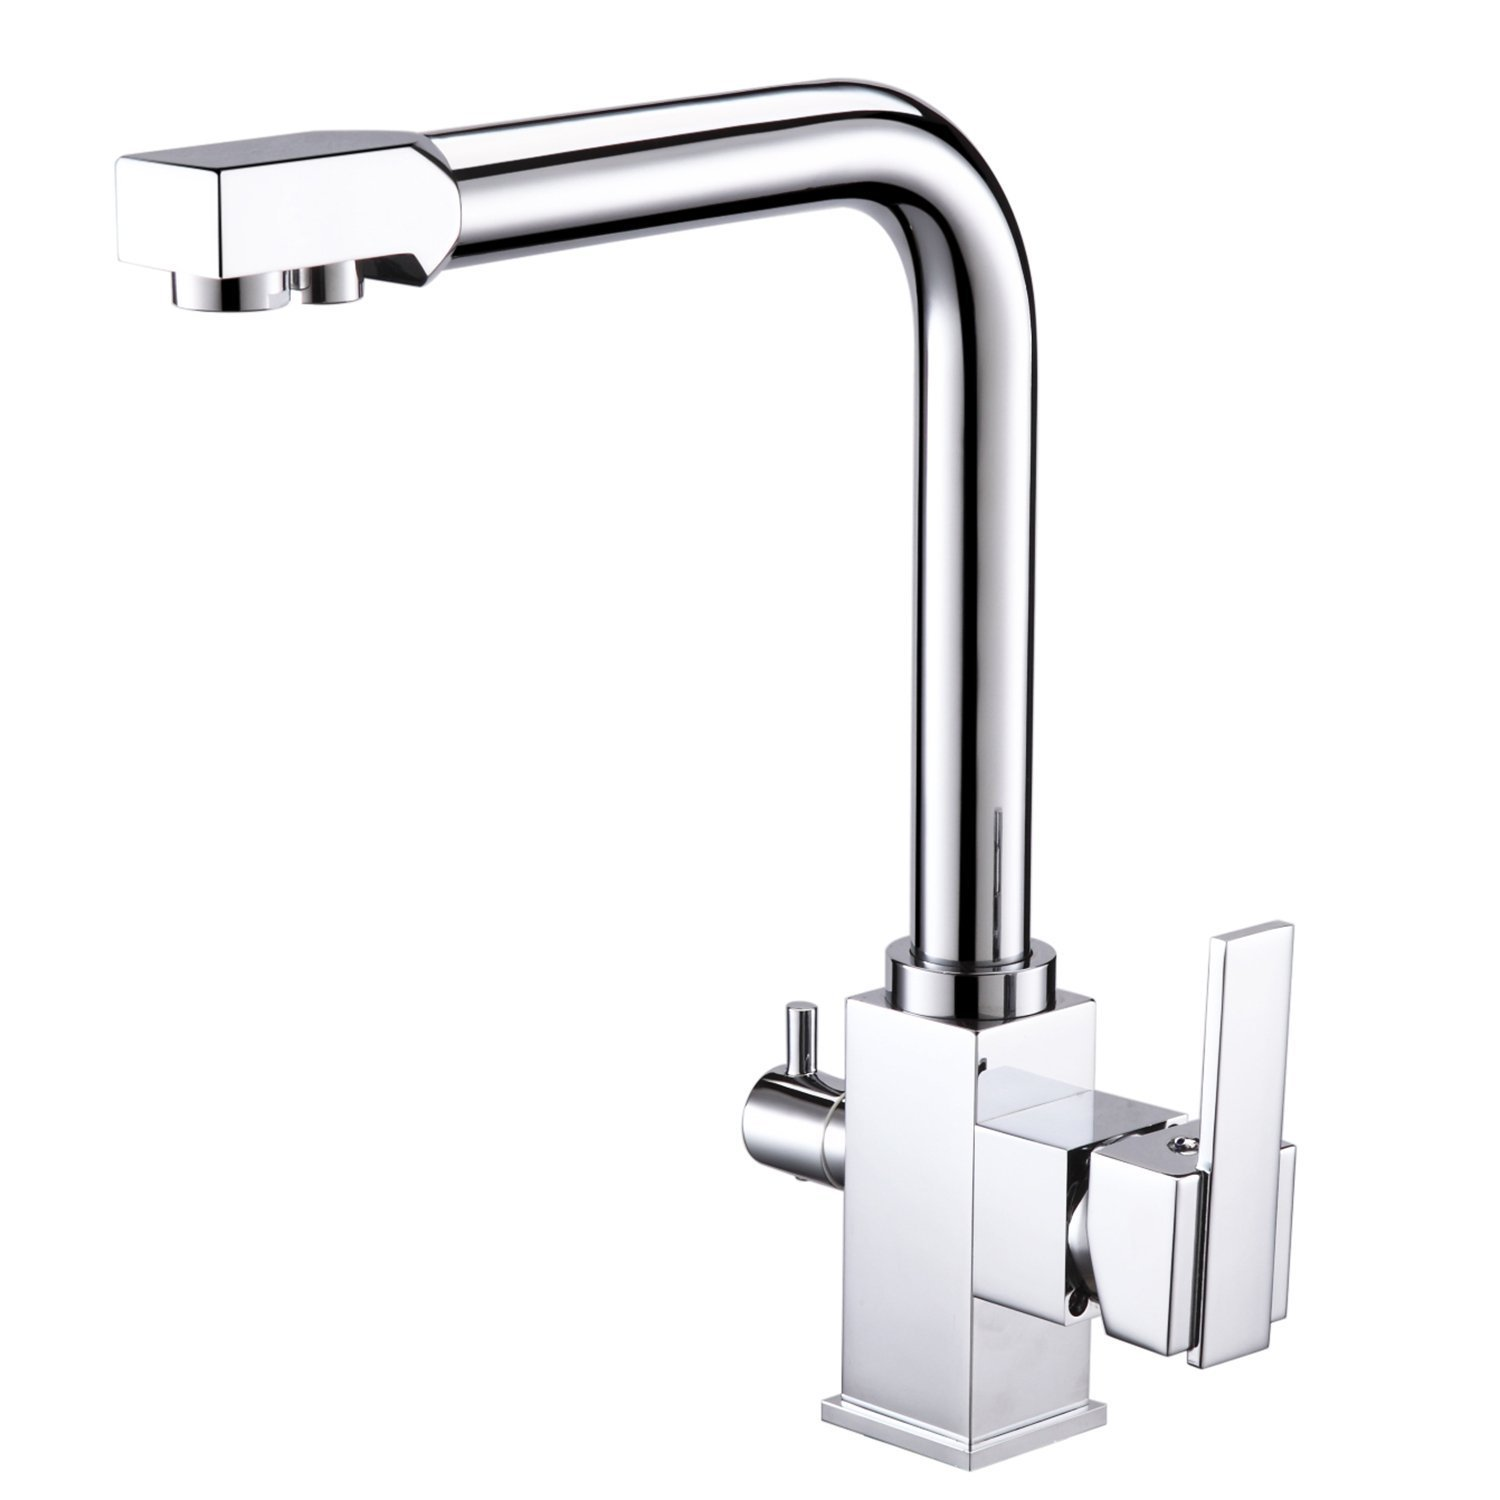 3 Way Water Filter Taps Stainless Steel Swivel Spout Pure Drinking Water Kitchen Sink Mixer Tap Funime